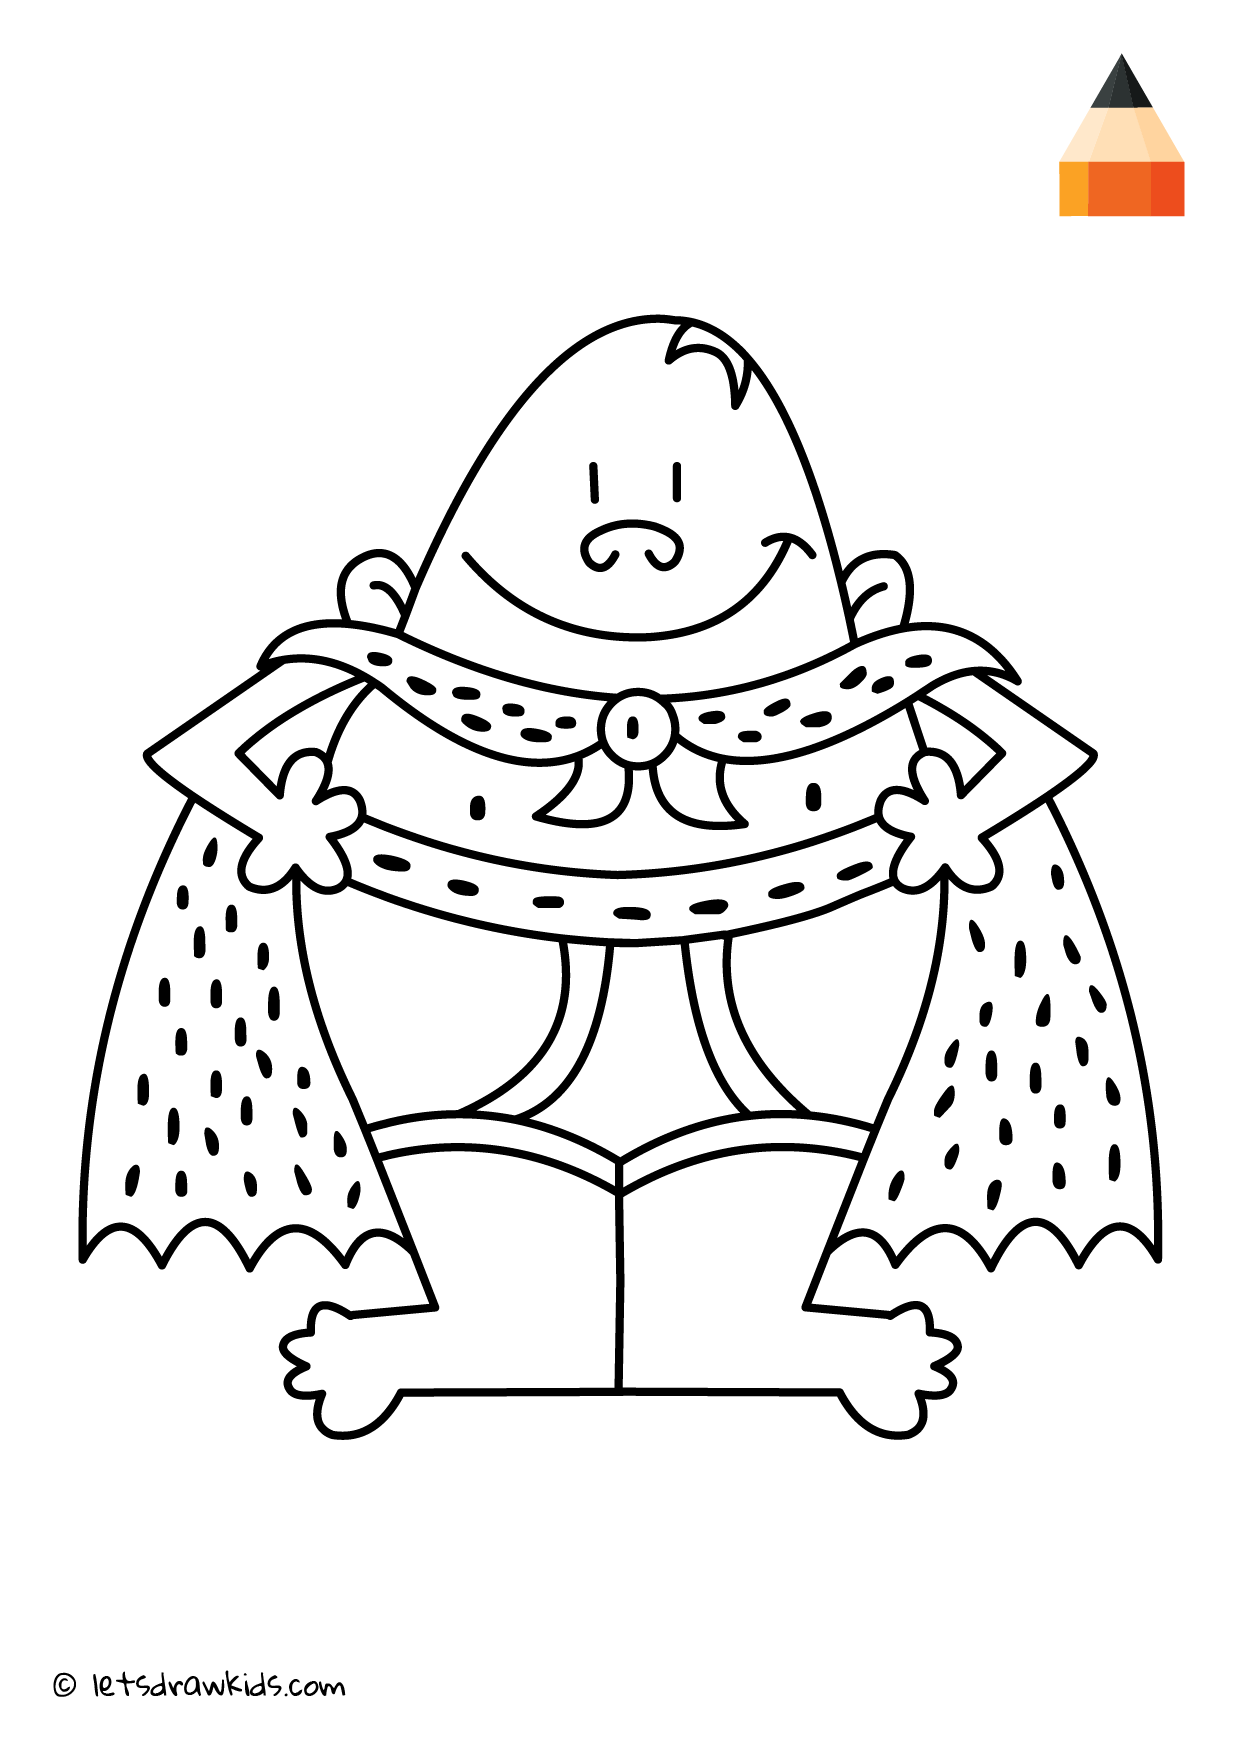 Coloring Page Captain Underpants Captain Underpants Coloring Pages Captain